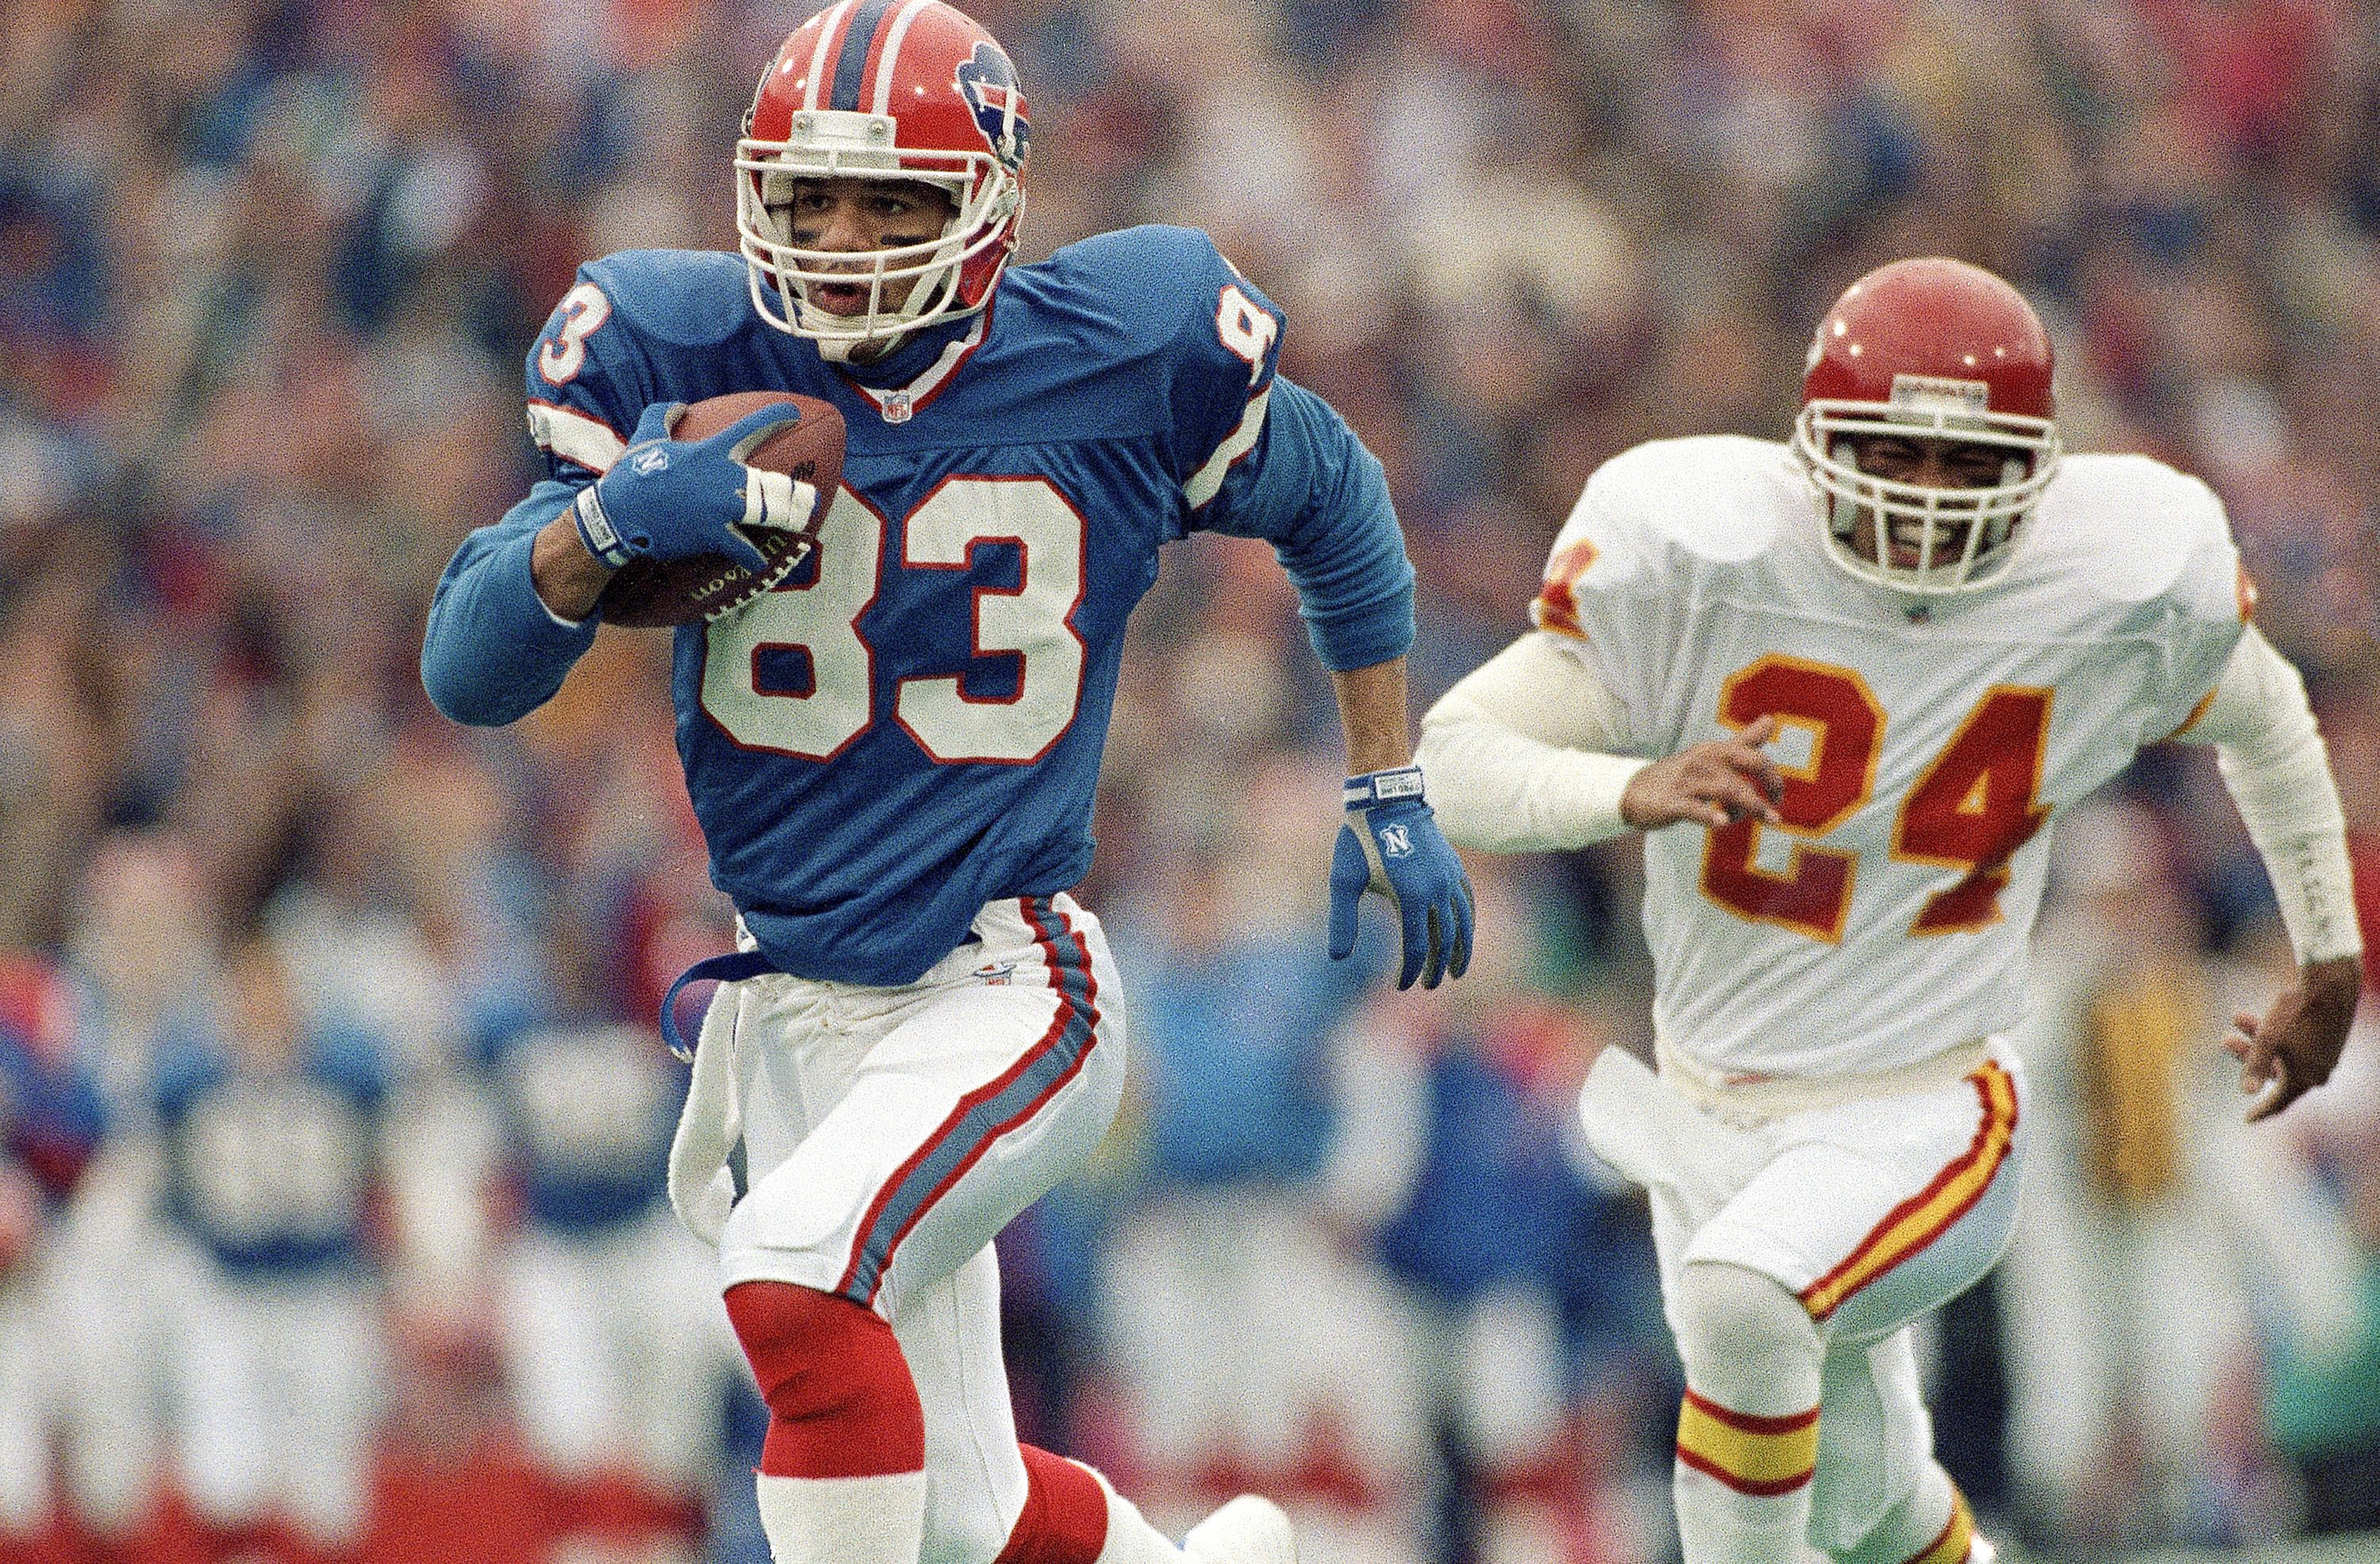 Andre Reed caught 951 passes for 13,198 yards and 87 touchdowns in his NFL career.